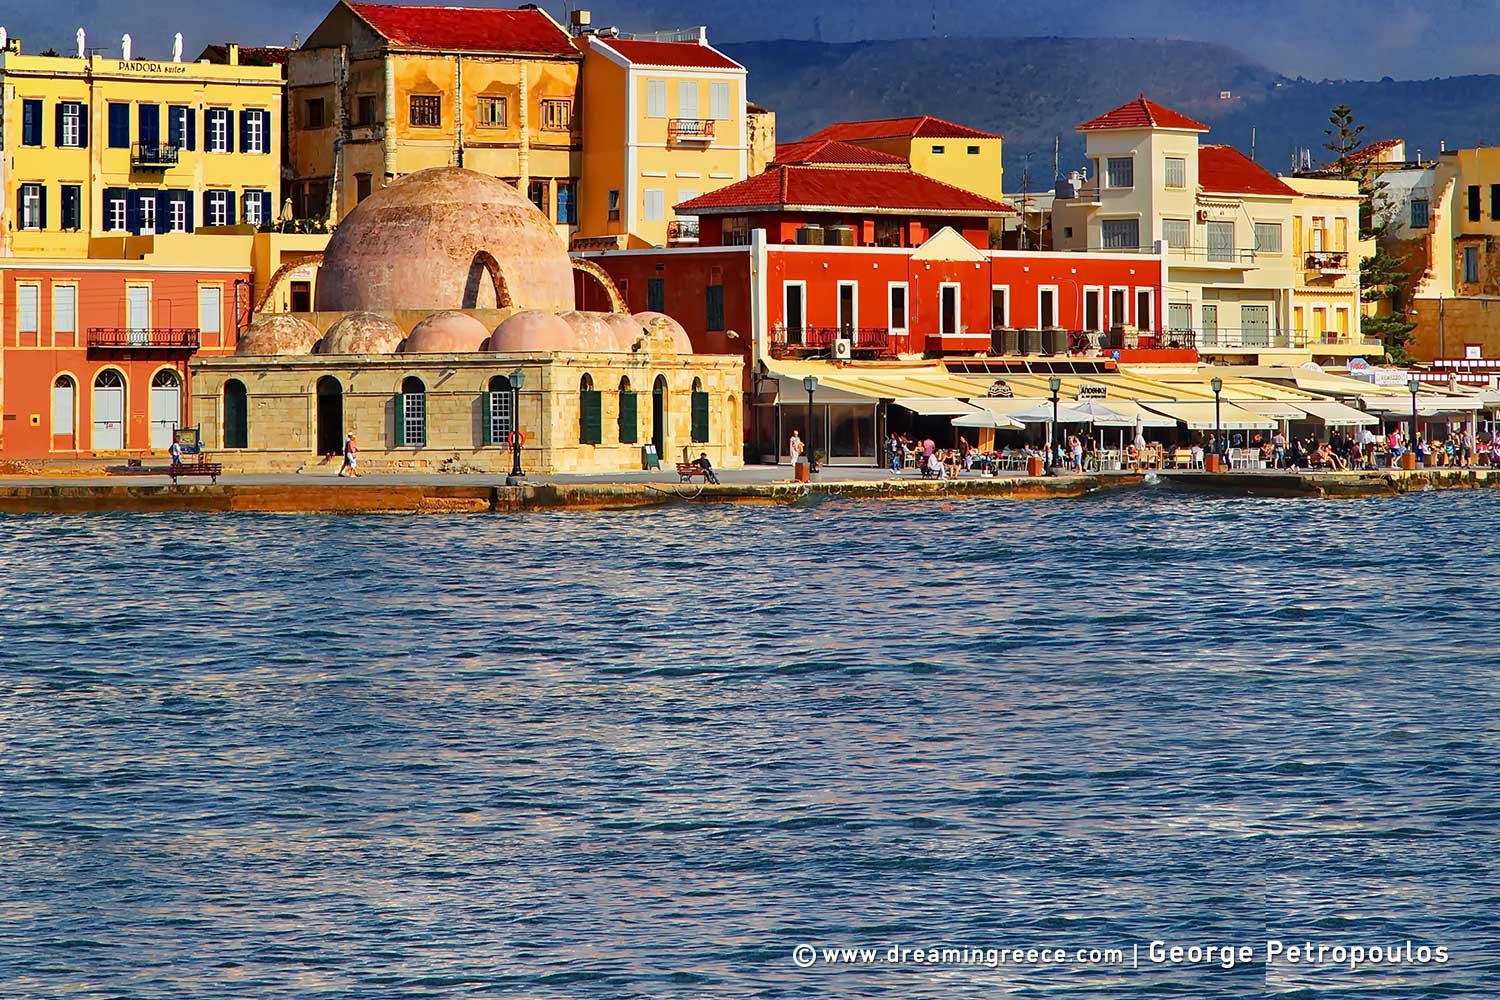 Holidays in Crete island Greece. Vacations Chania Rethymno Heraklion Lasithi